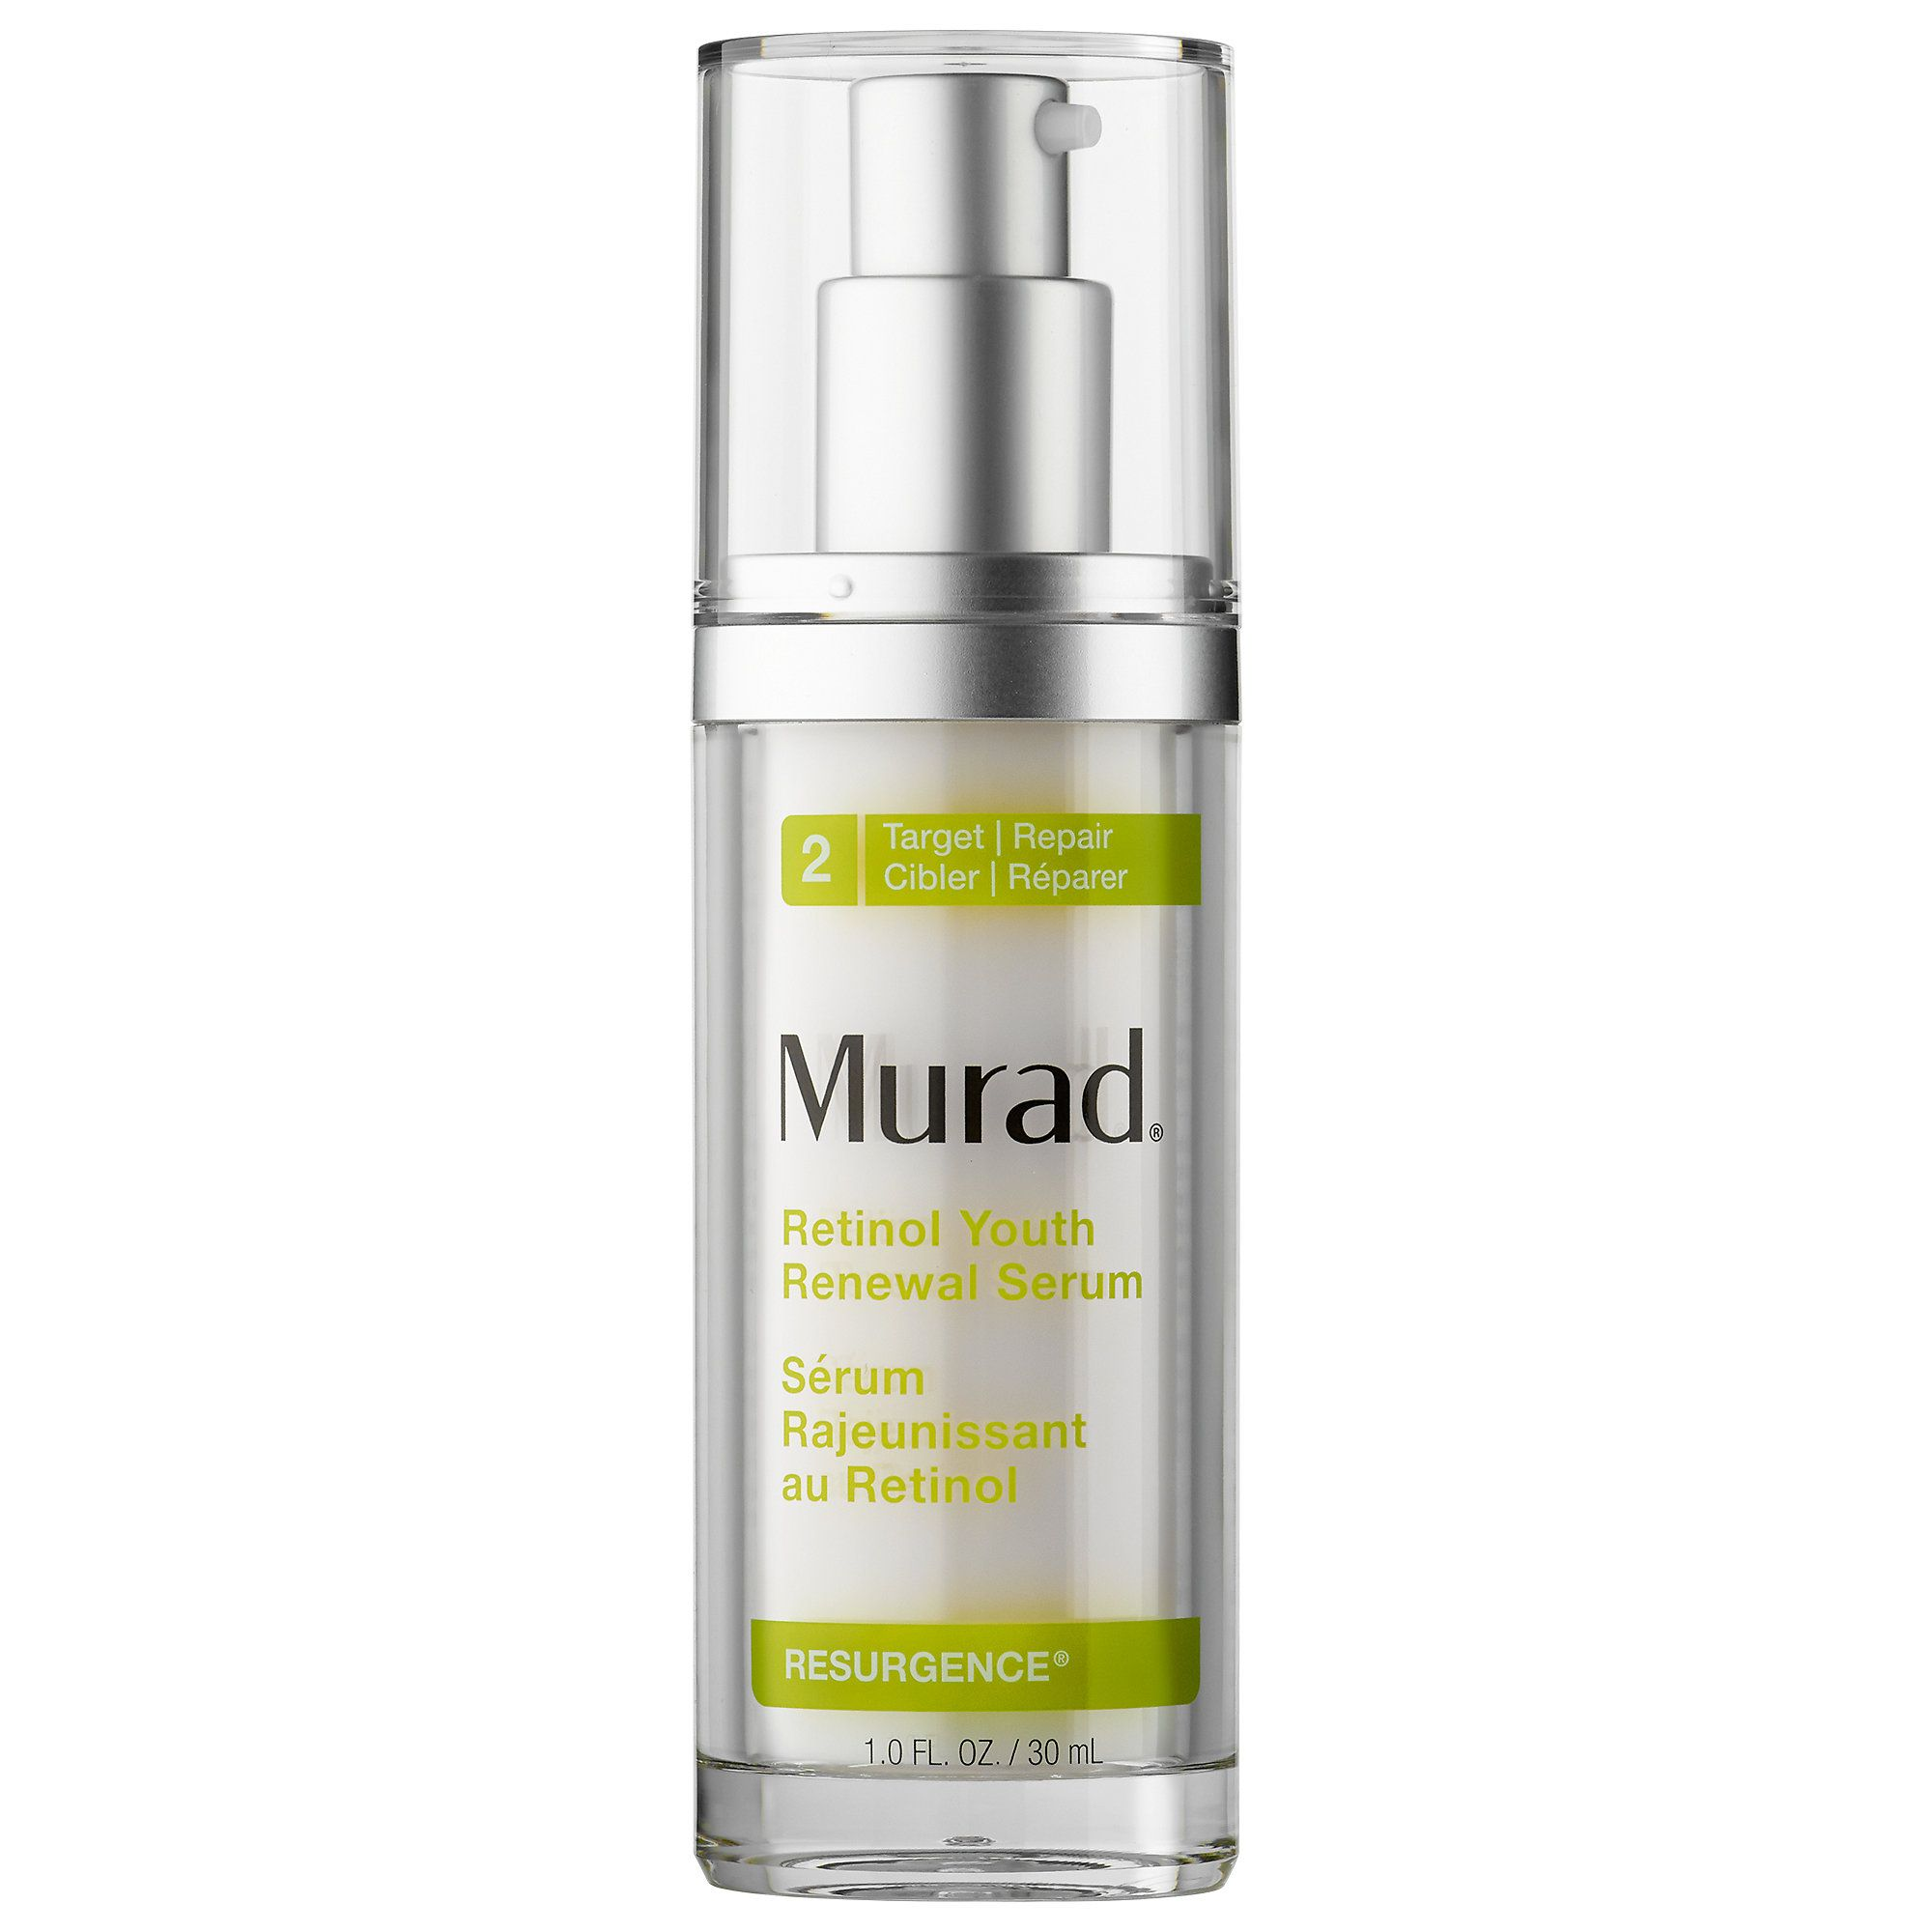 Retinol Youth Renewal Serum Murad Sephora Retinol Anti Aging Skin Products Best Anti Aging Serum